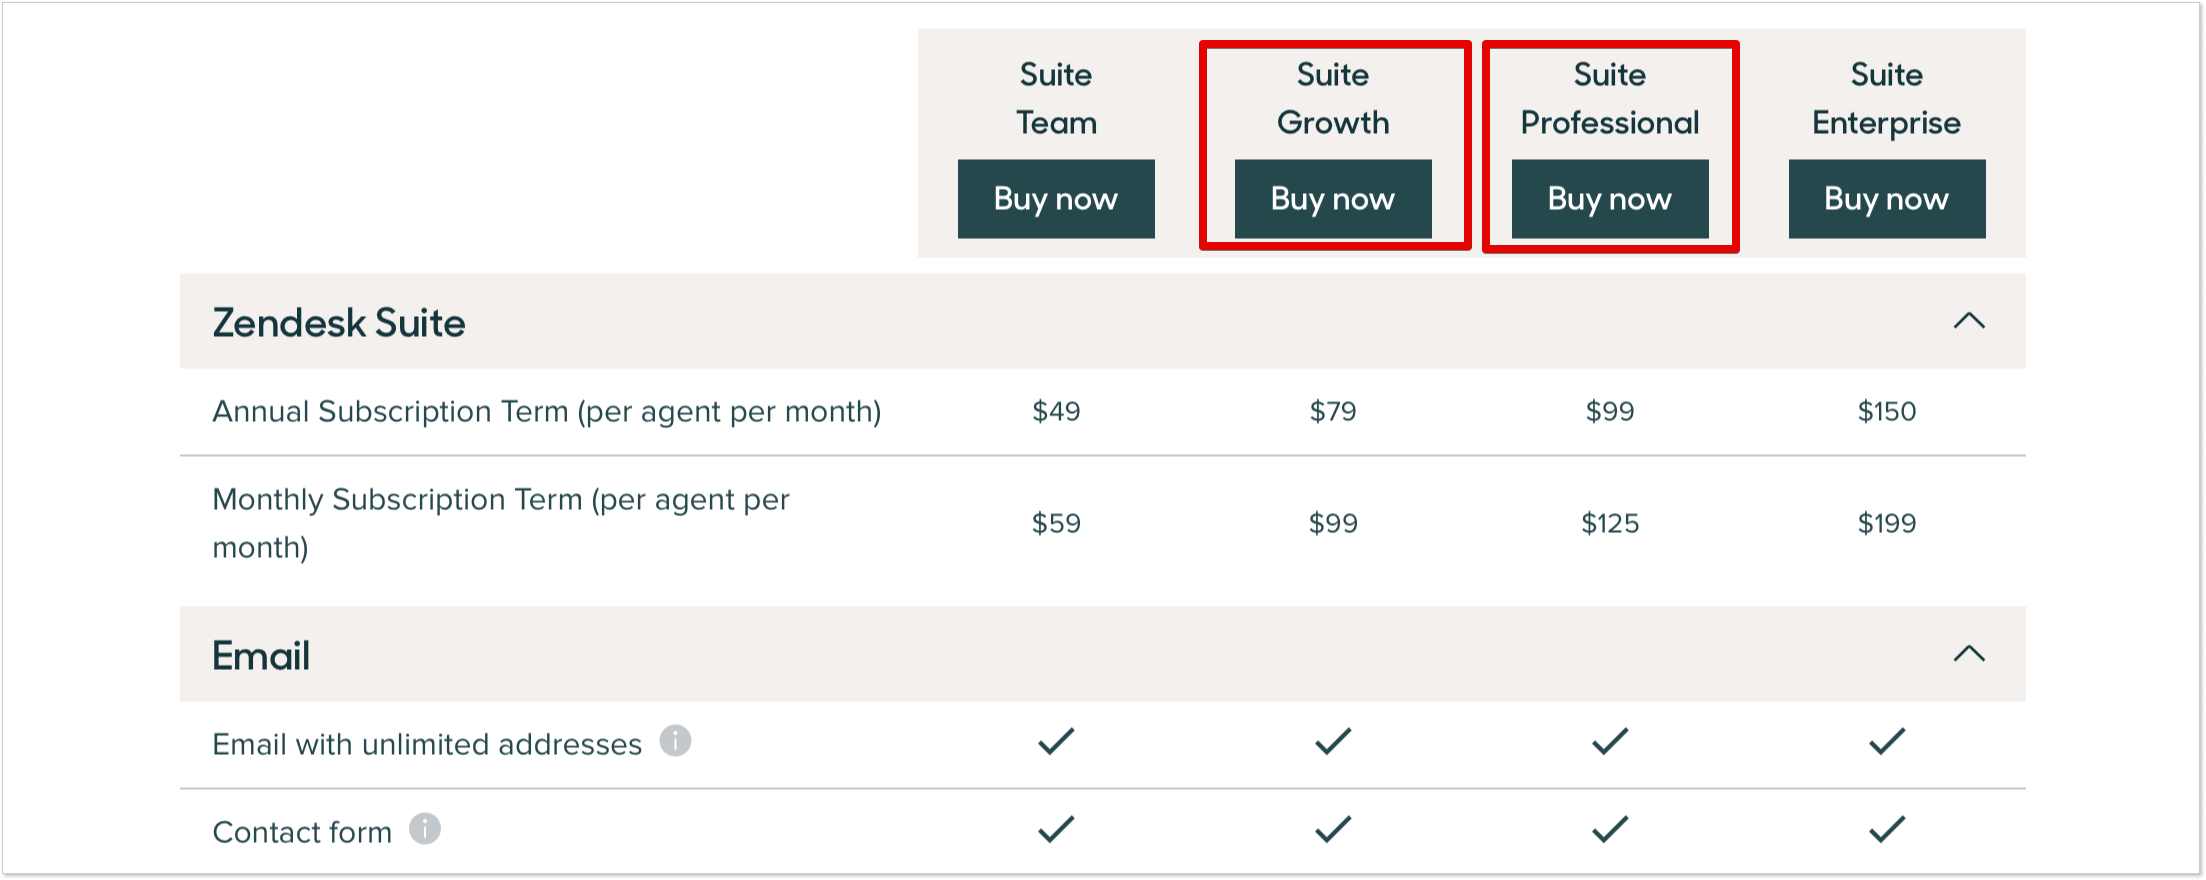 Zendesk Suite Growth and Suite Professional pricing